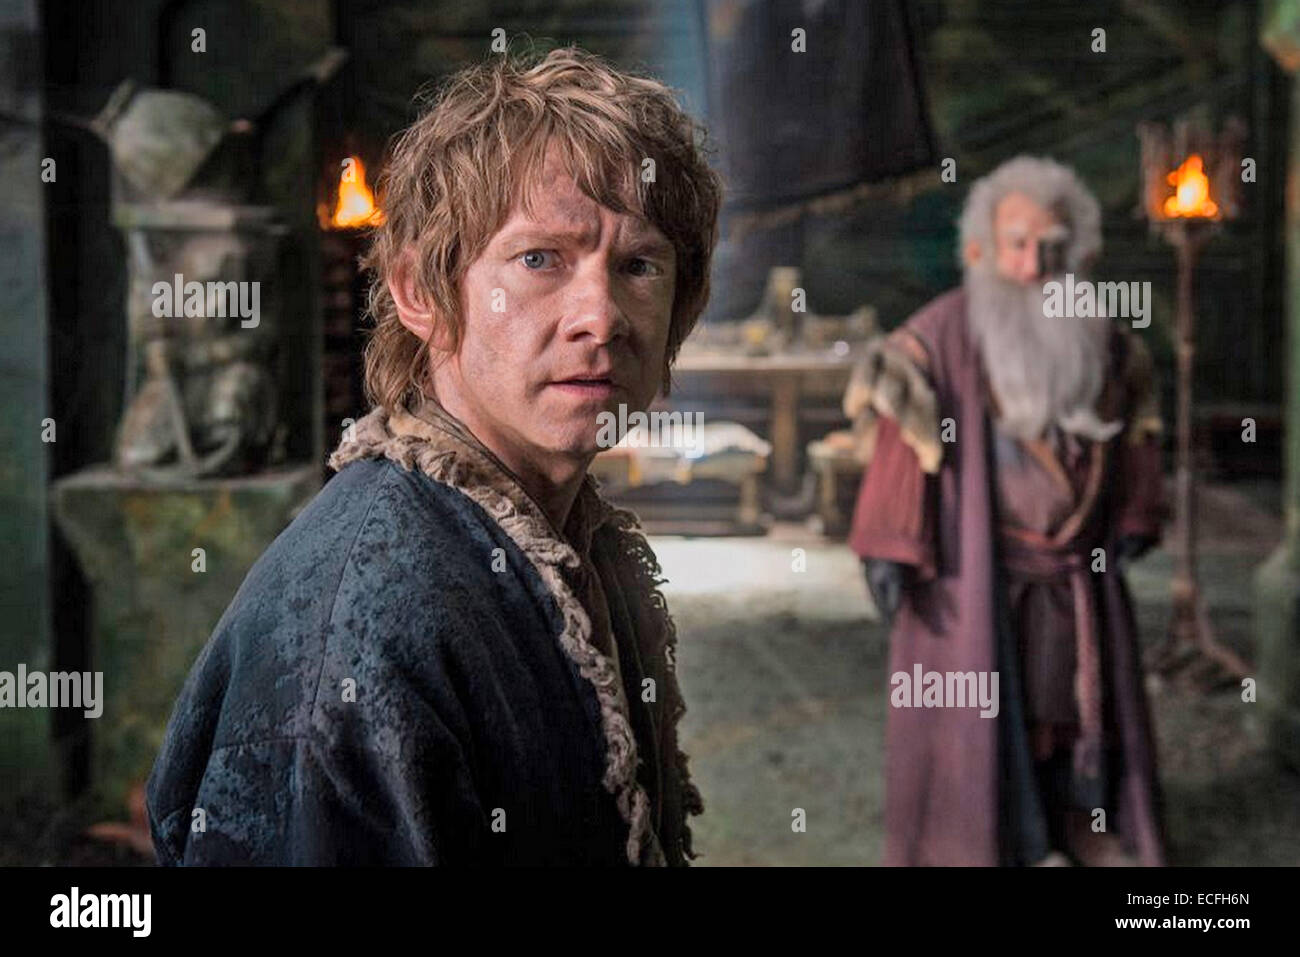 THE HOBBIT : THE BATTLE OF THE FIVE ARMIES  2014 MGM film with Martin Freeman at left and Ken Stott - Stock Image